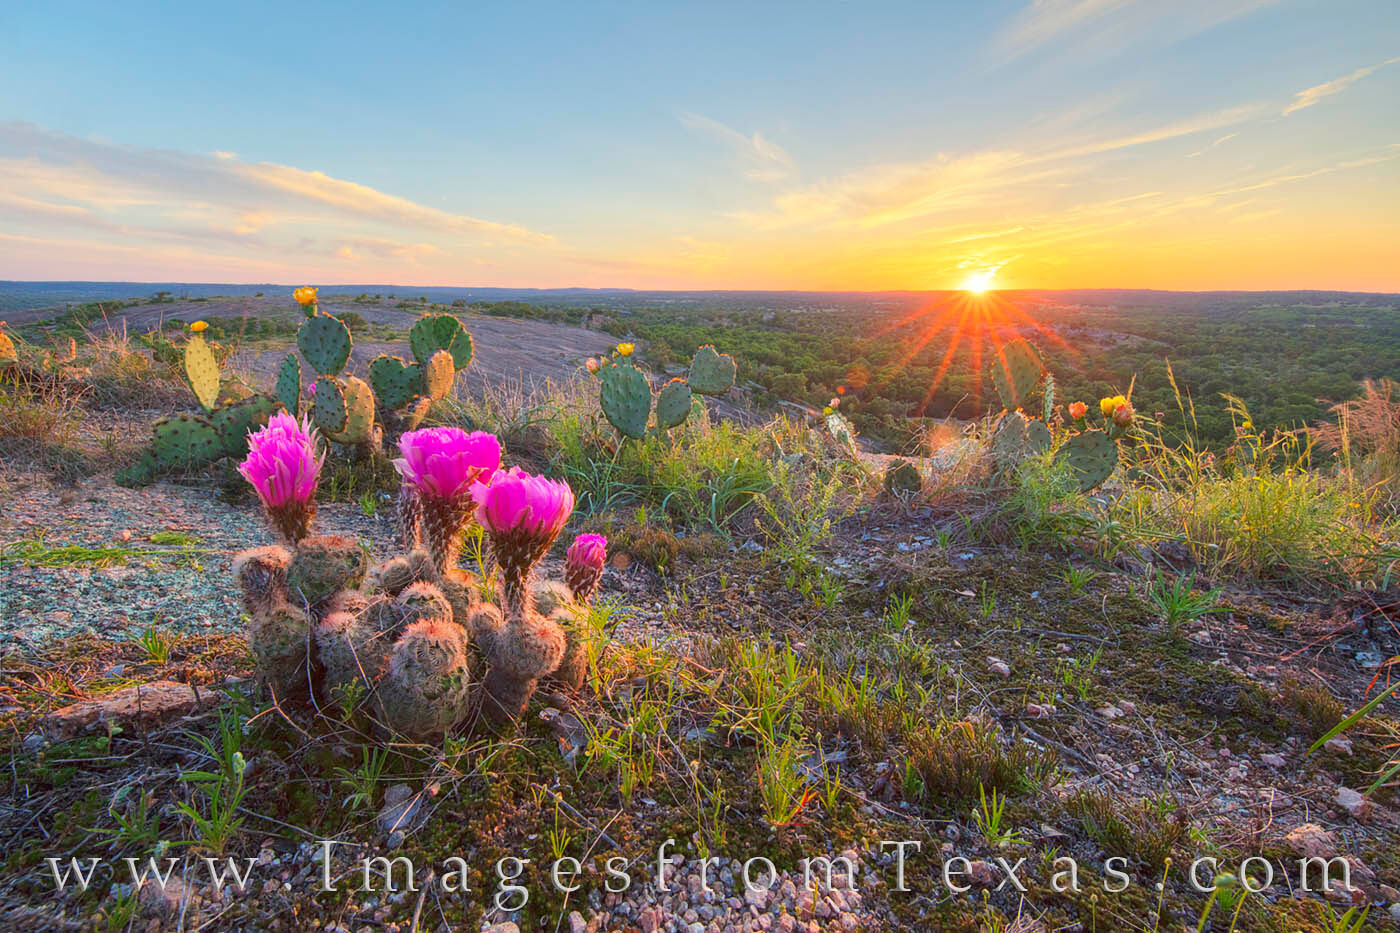 enchanted rock, sunset, purple candle, prickly pear, quinta mazatlan, cactus blooms, wildflowers, texas sunset, texas state parks, photo